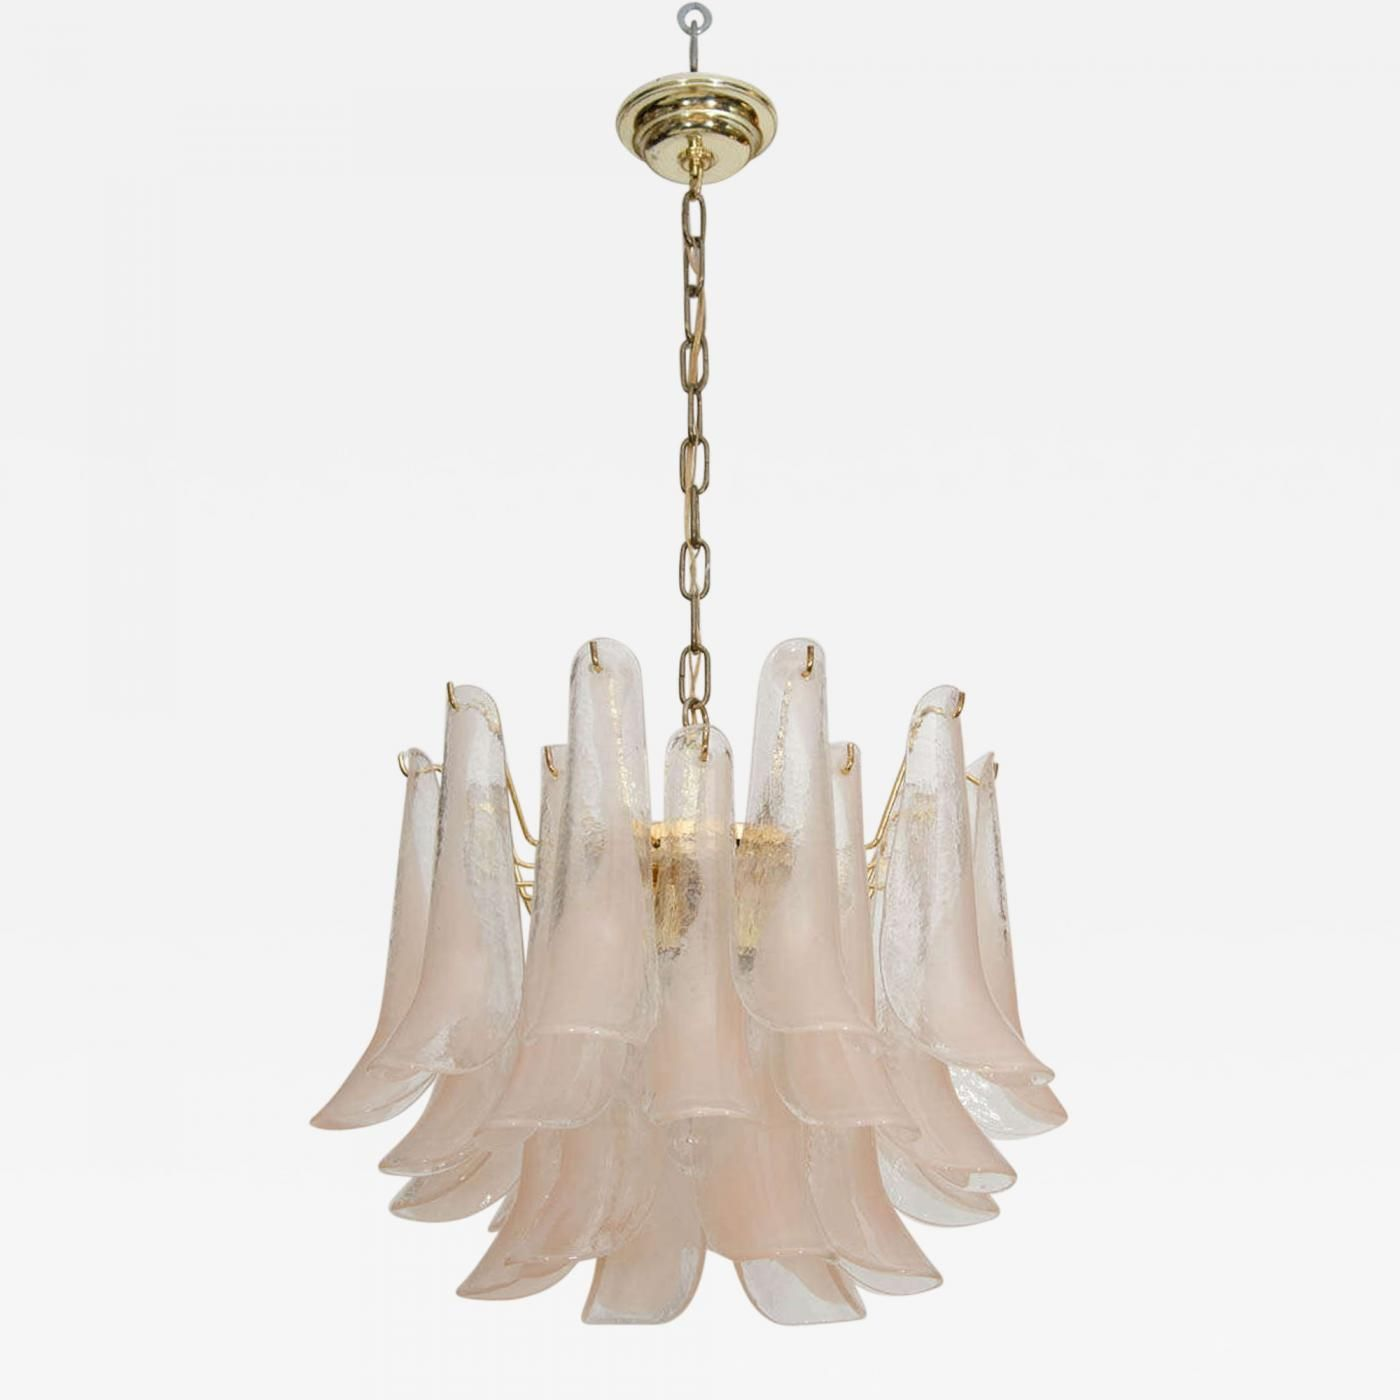 Beautiful Soft Pink and Brass Mazzega Chandelier